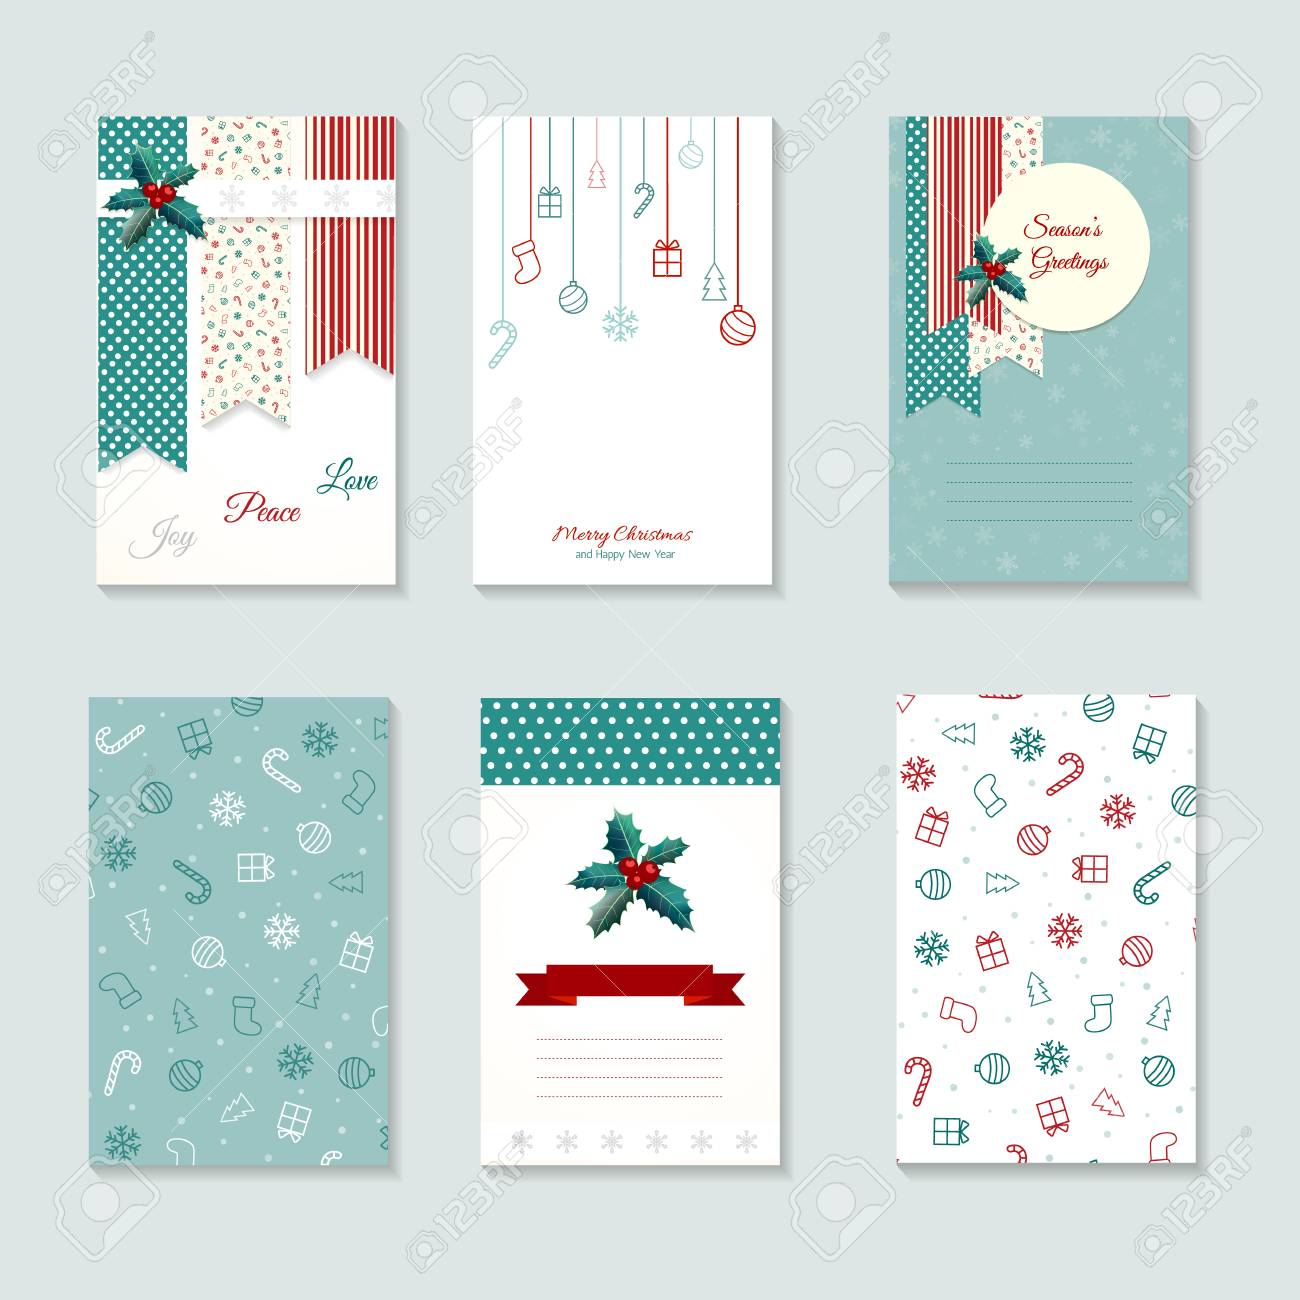 Christmas Card Templates.Christmas Card Templates Holiday Posters Set Template For Greeting